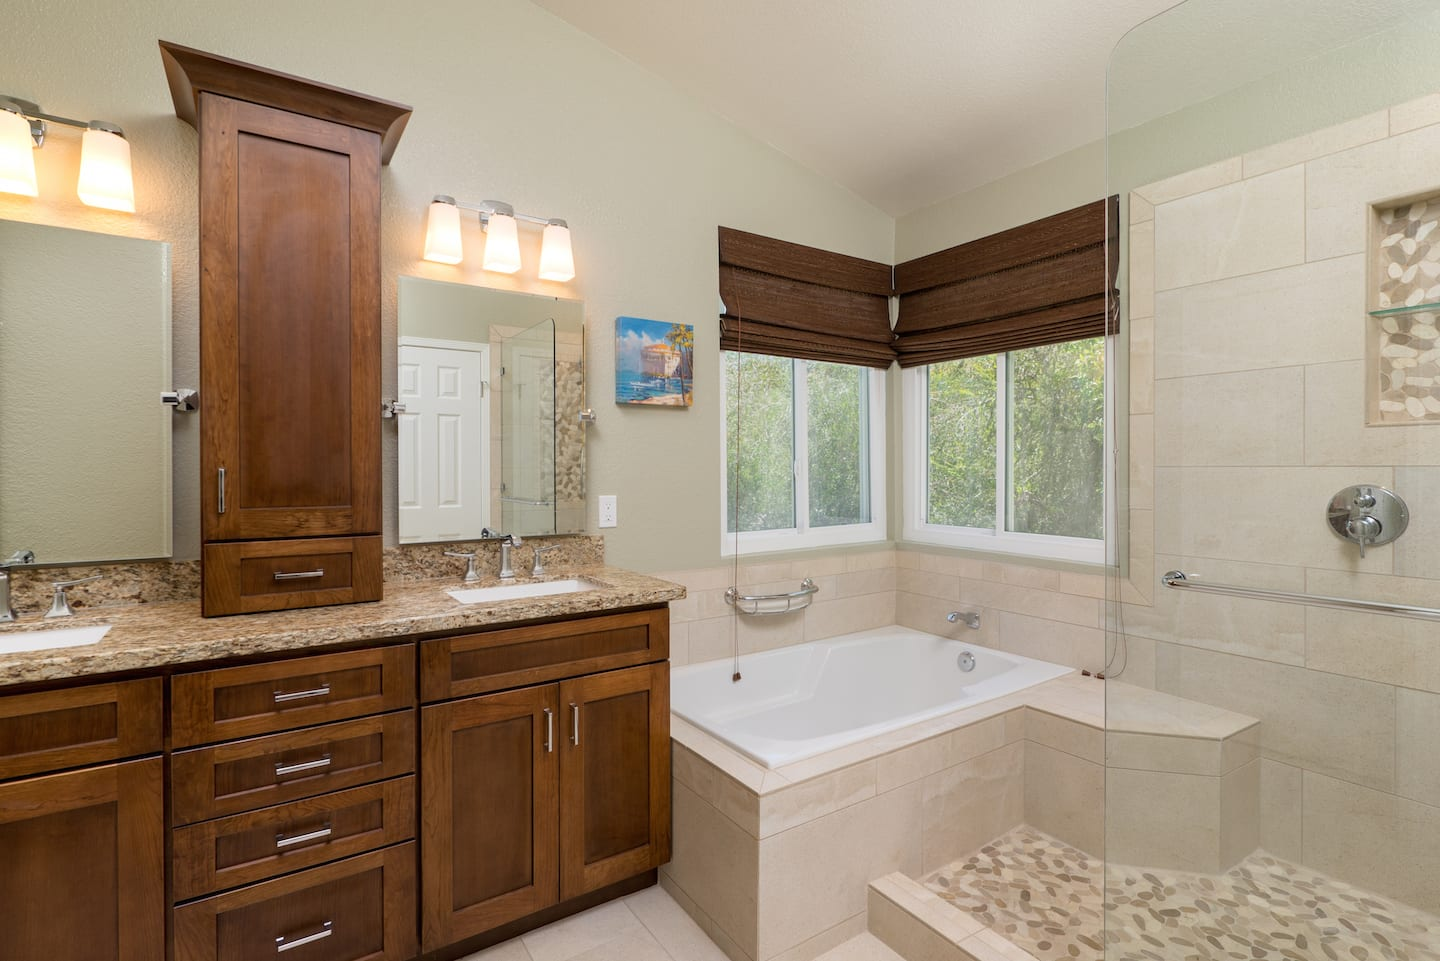 Images Of Remodeled Bathrooms Bathroom Remodeling  Planning And Hiring  Angie's List